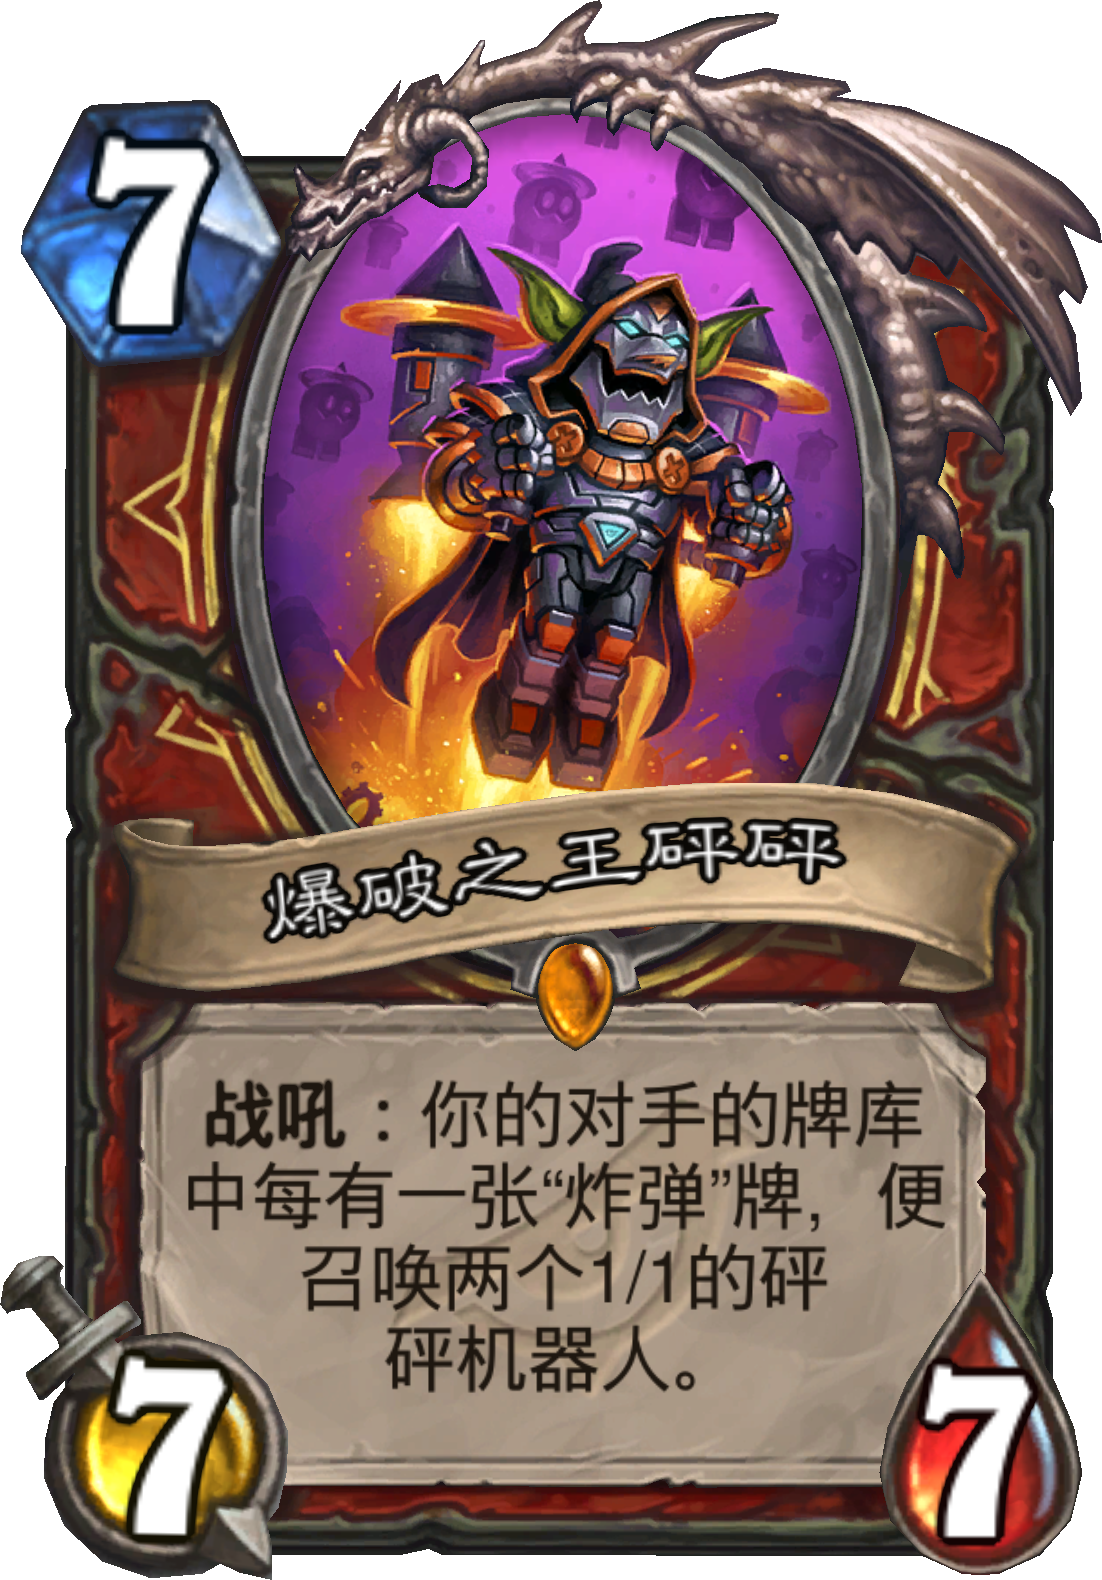 1_riseofshadows_WARRIOR__DAL_064_zhCN_BlastmasterBoom.png